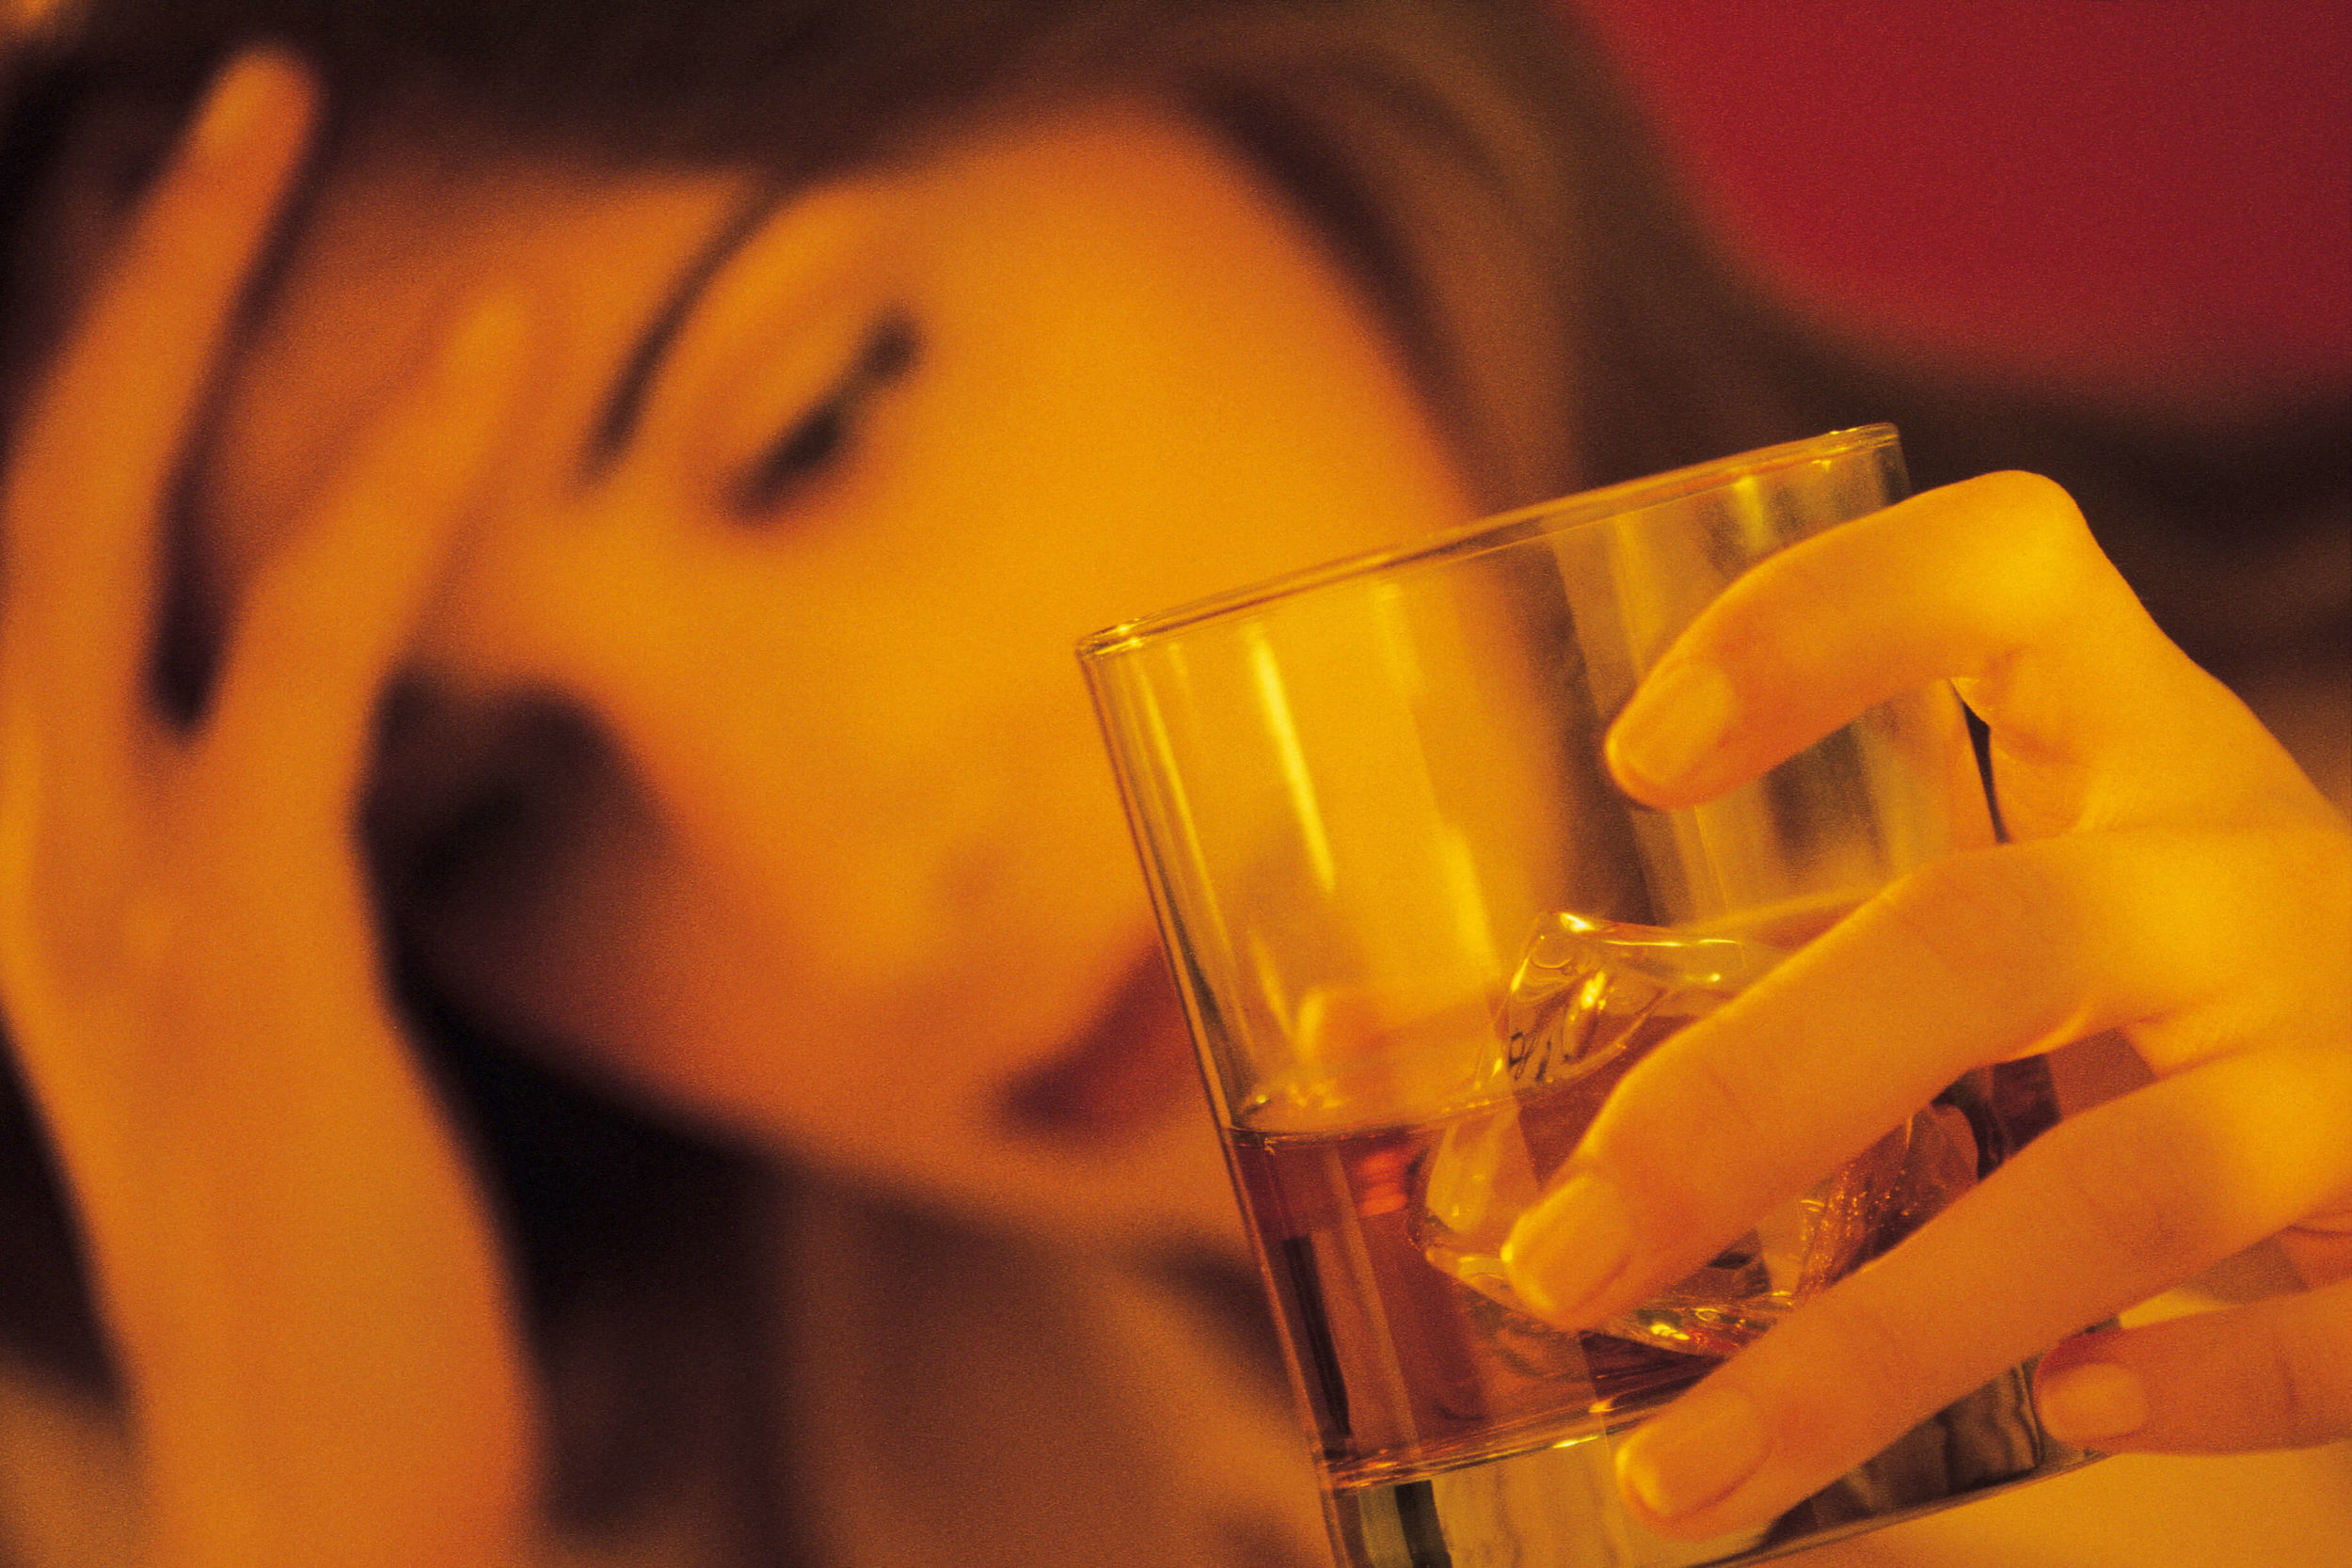 Alcoholism and addiction can be genetic.